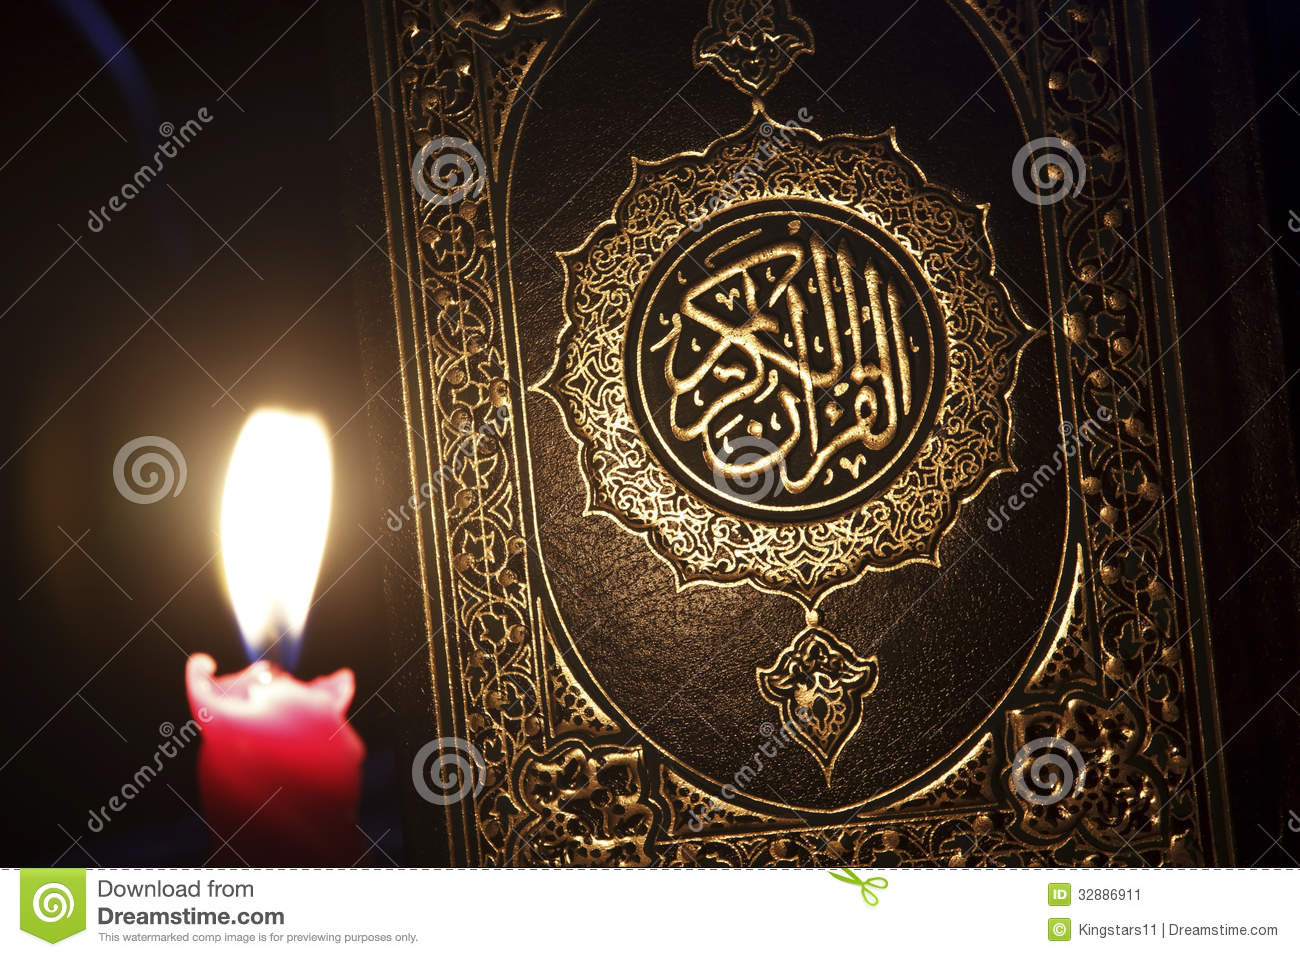 Al-Quran with candle light,Islam book alquran with candle light.